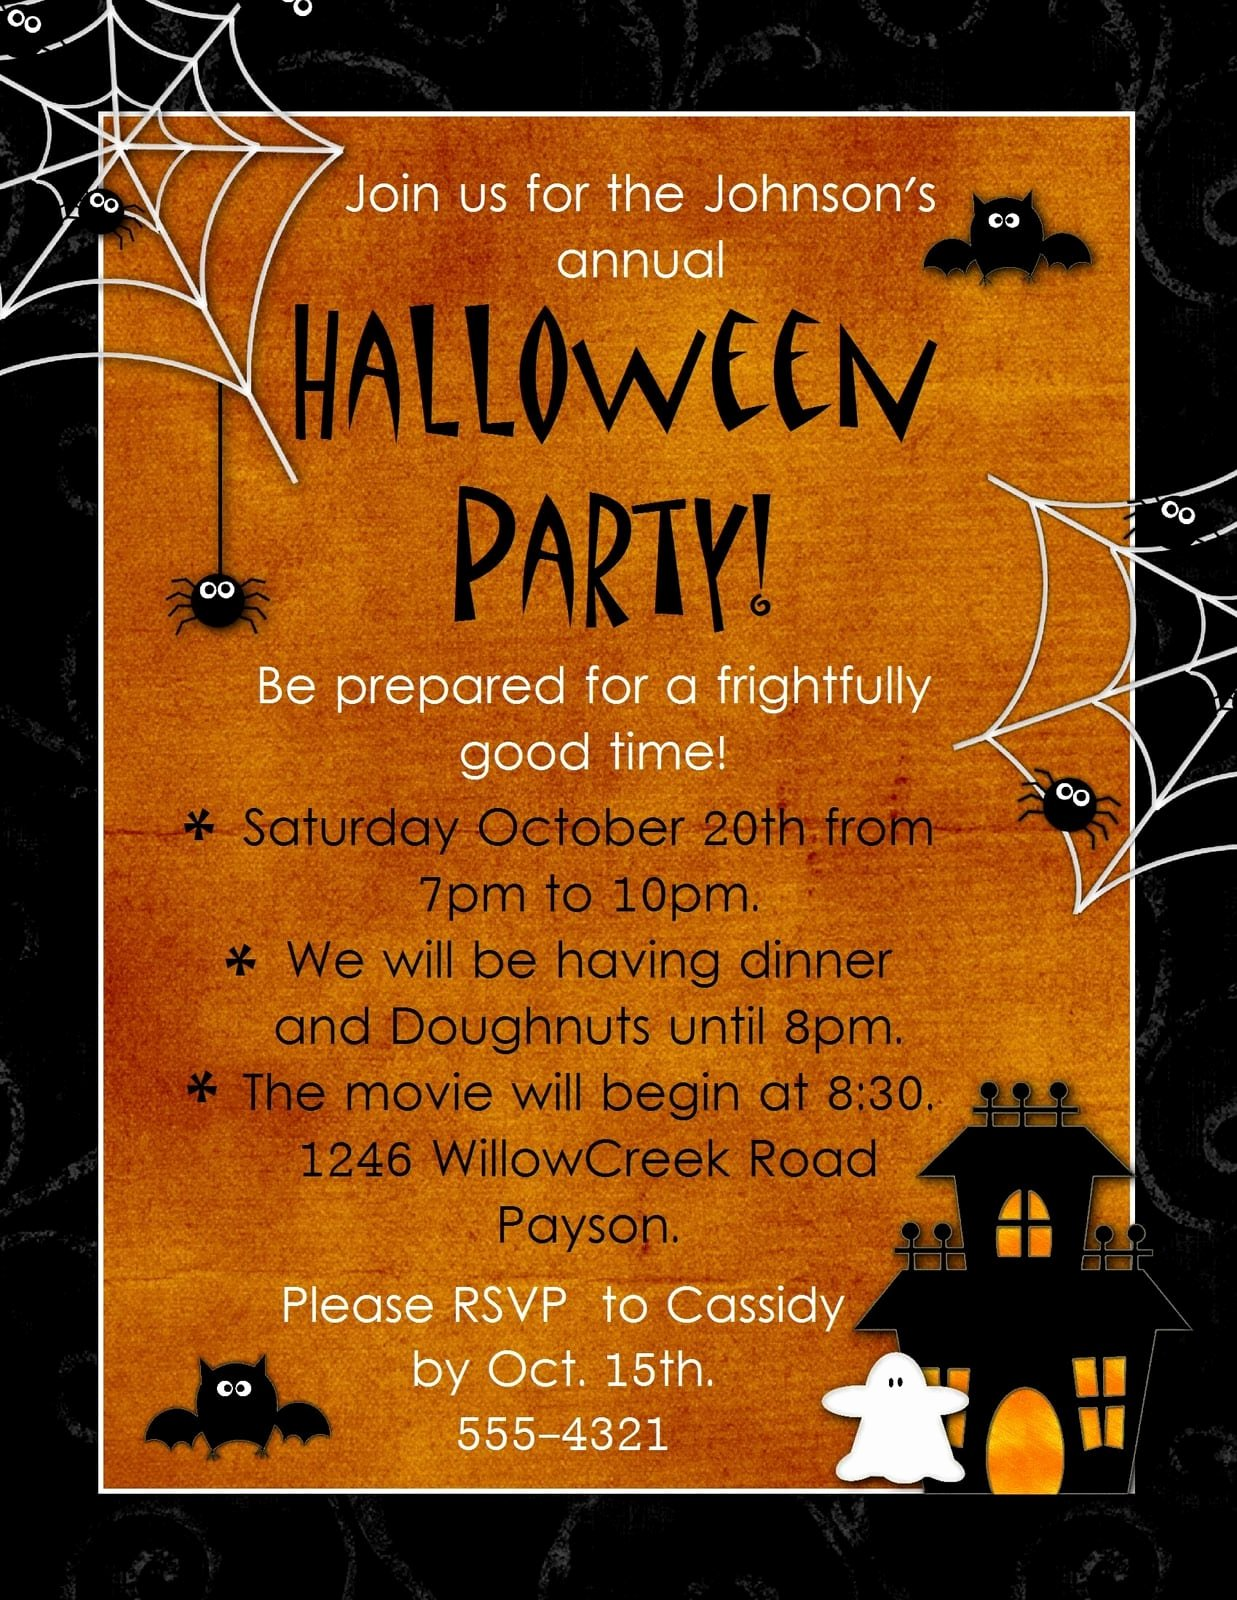 Halloween Party Invitation Template Luxury Halloween Invitation Template Free